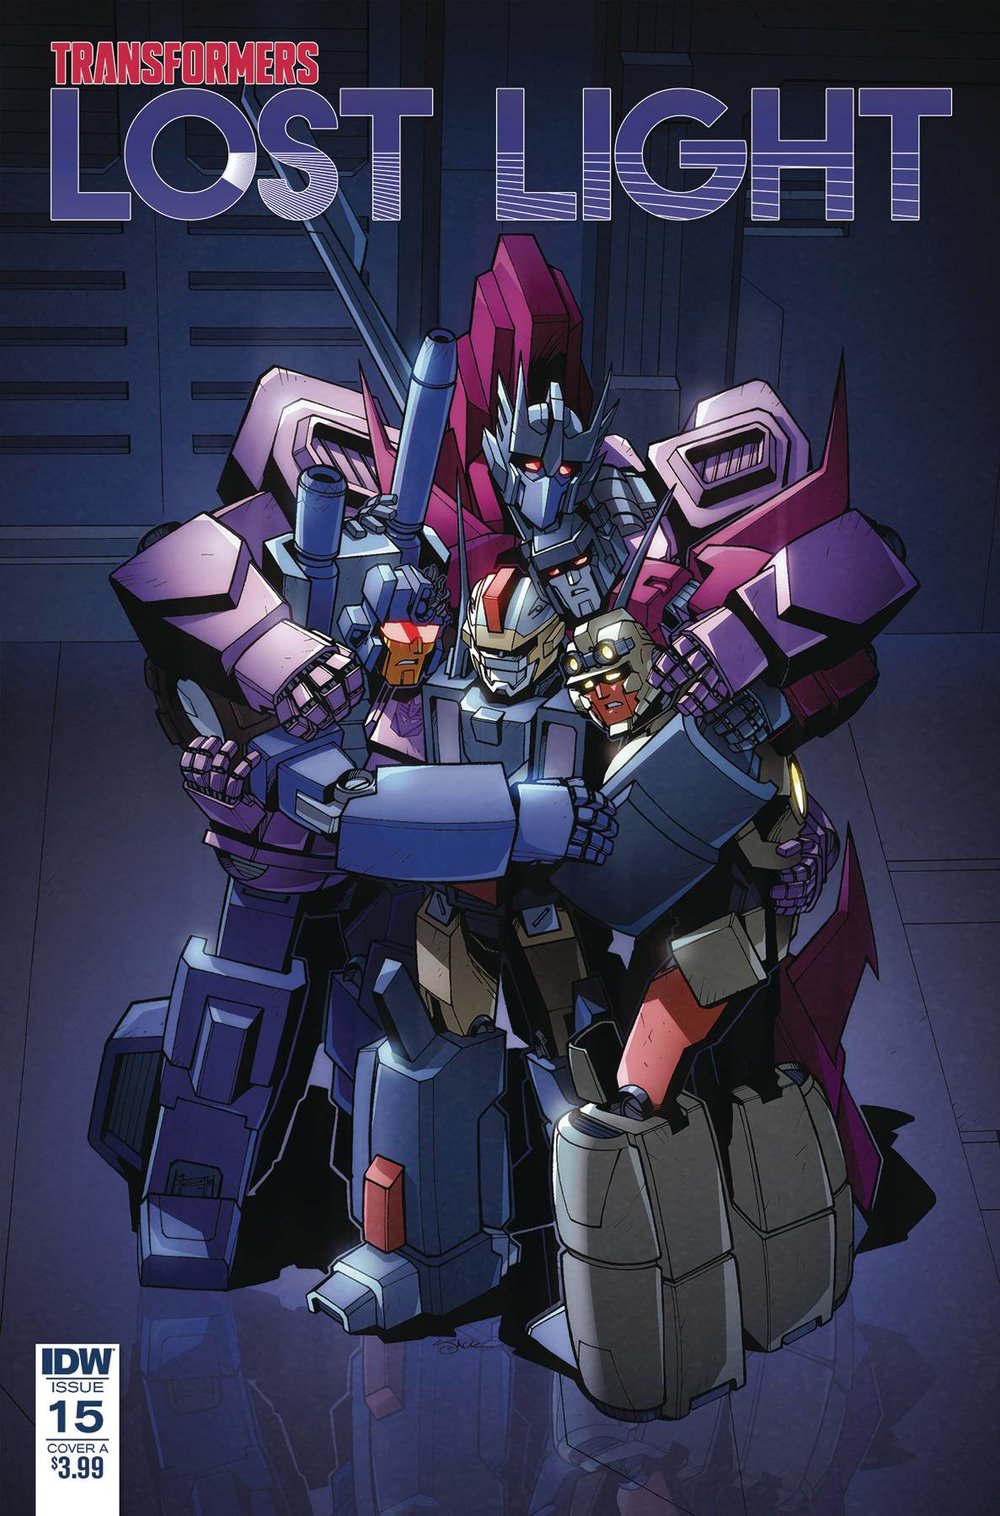 TRANSFORMERS LOST LIGHT 15 CVR A LAWRENCE.jpg